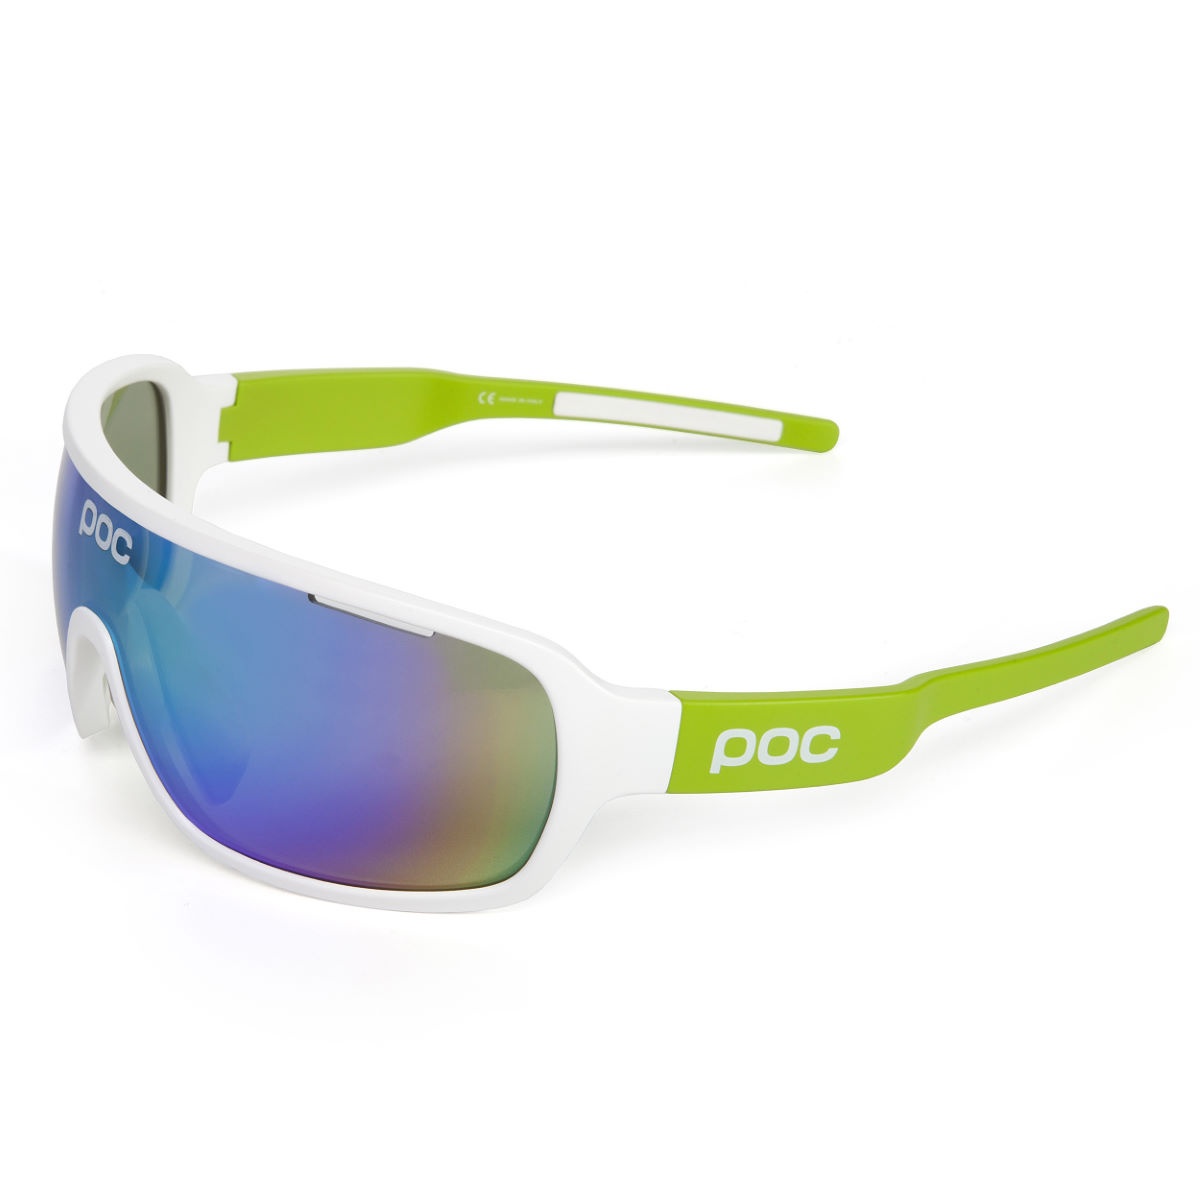 Gafas de sol POC Cannondale Team Edition DO Blade - Gafas de sol